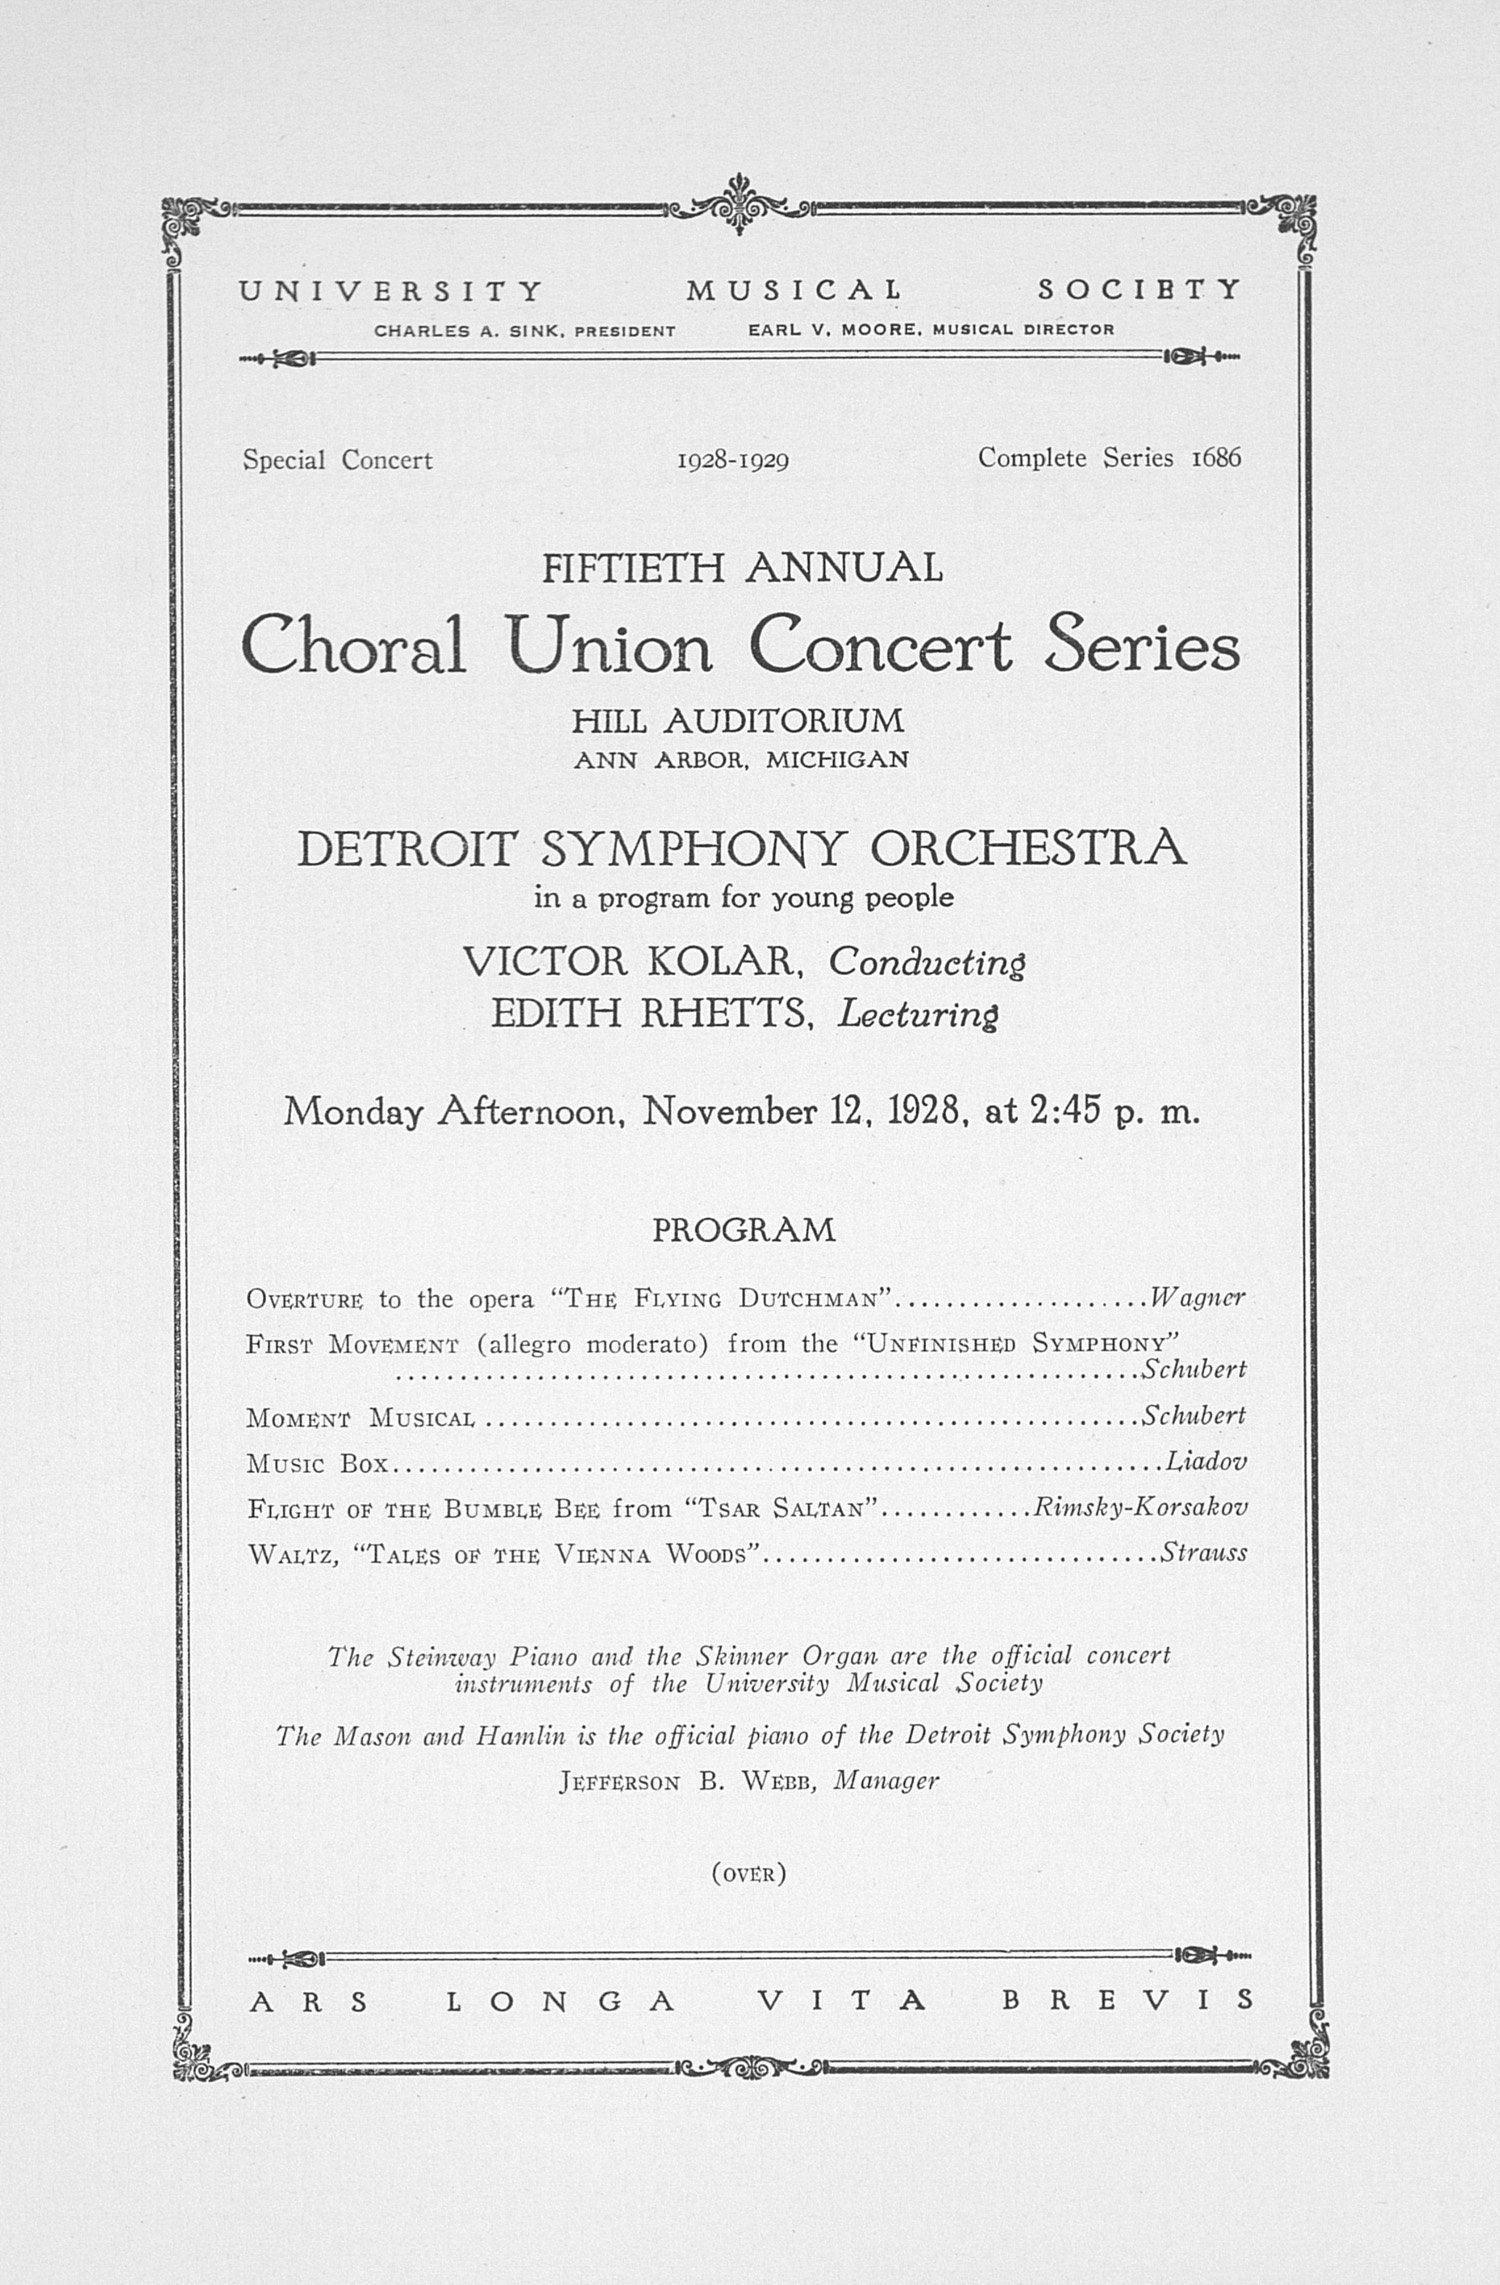 UMS Concert Program, November 12, 1928: Fiftieth Annual Choral Union Concert Series -- Detroit Symphony Orchestra image